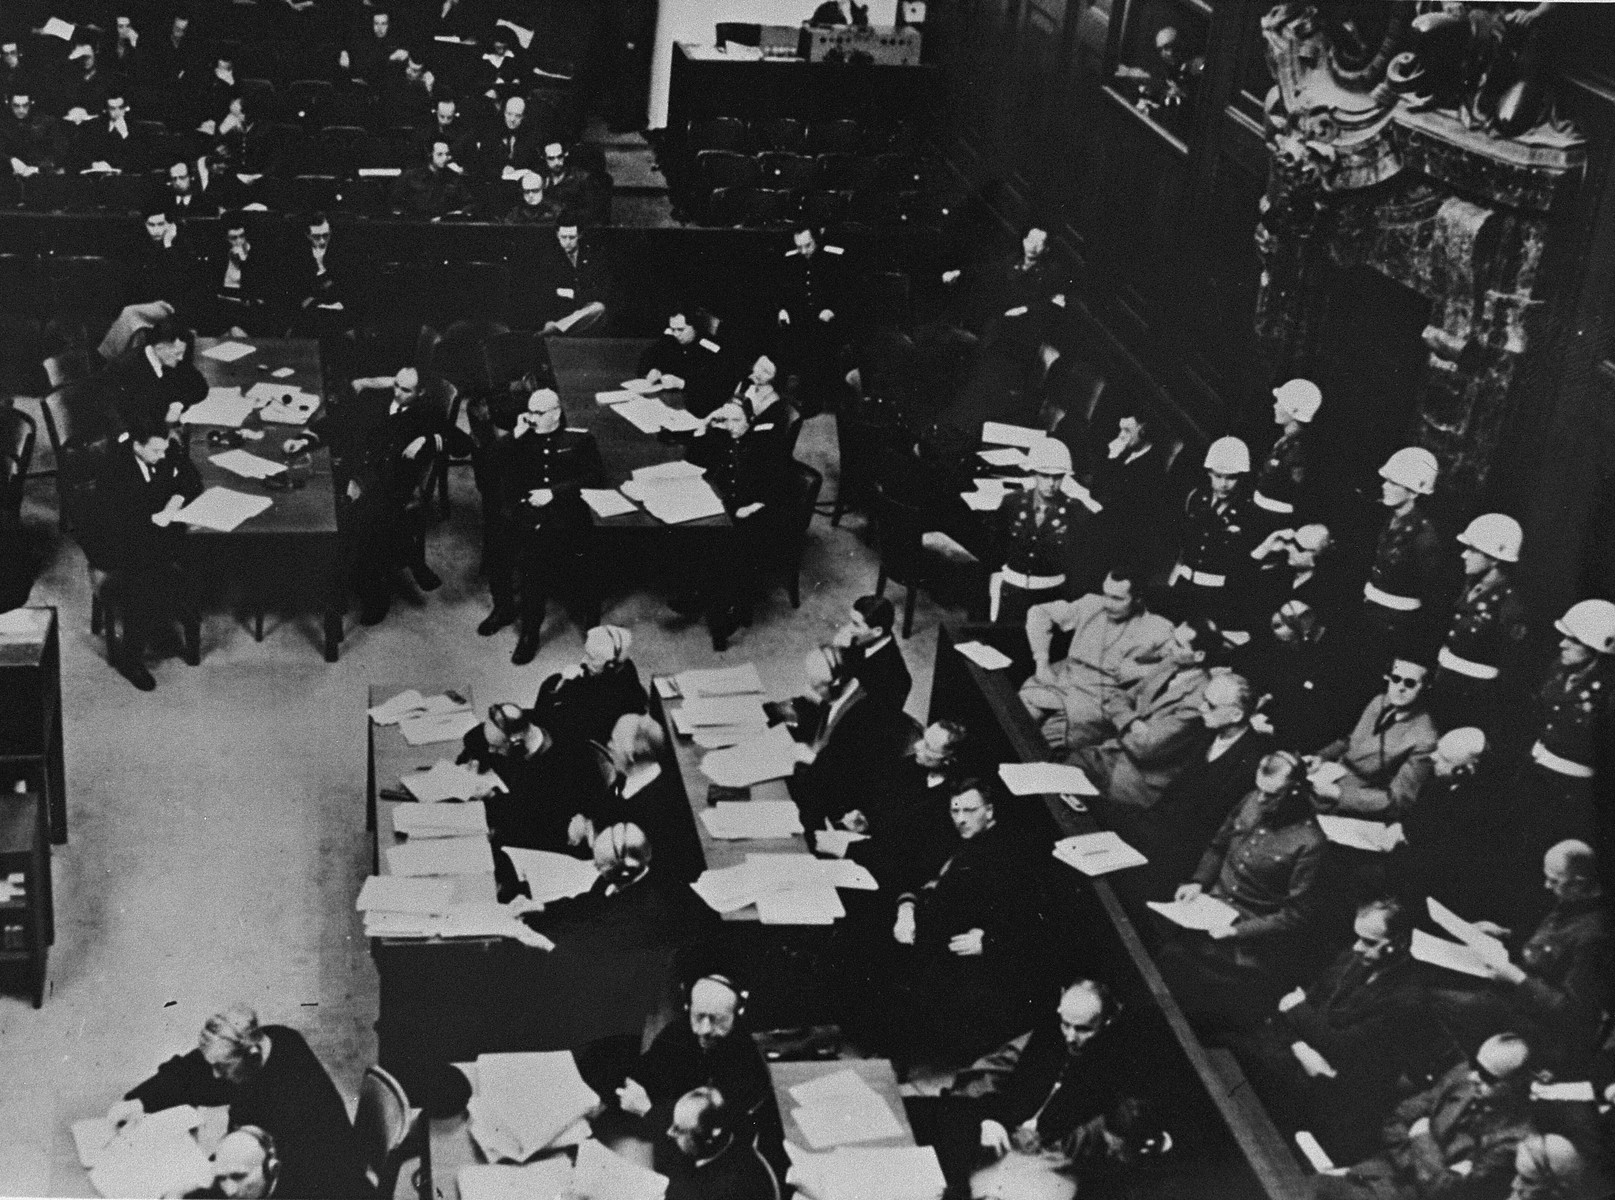 The defendants (right), their lawyers (bottom middle), and the French and Soviet prosecution tables (top middle and top left) at the International Military Tribunal trial of war criminals at Nuremberg.